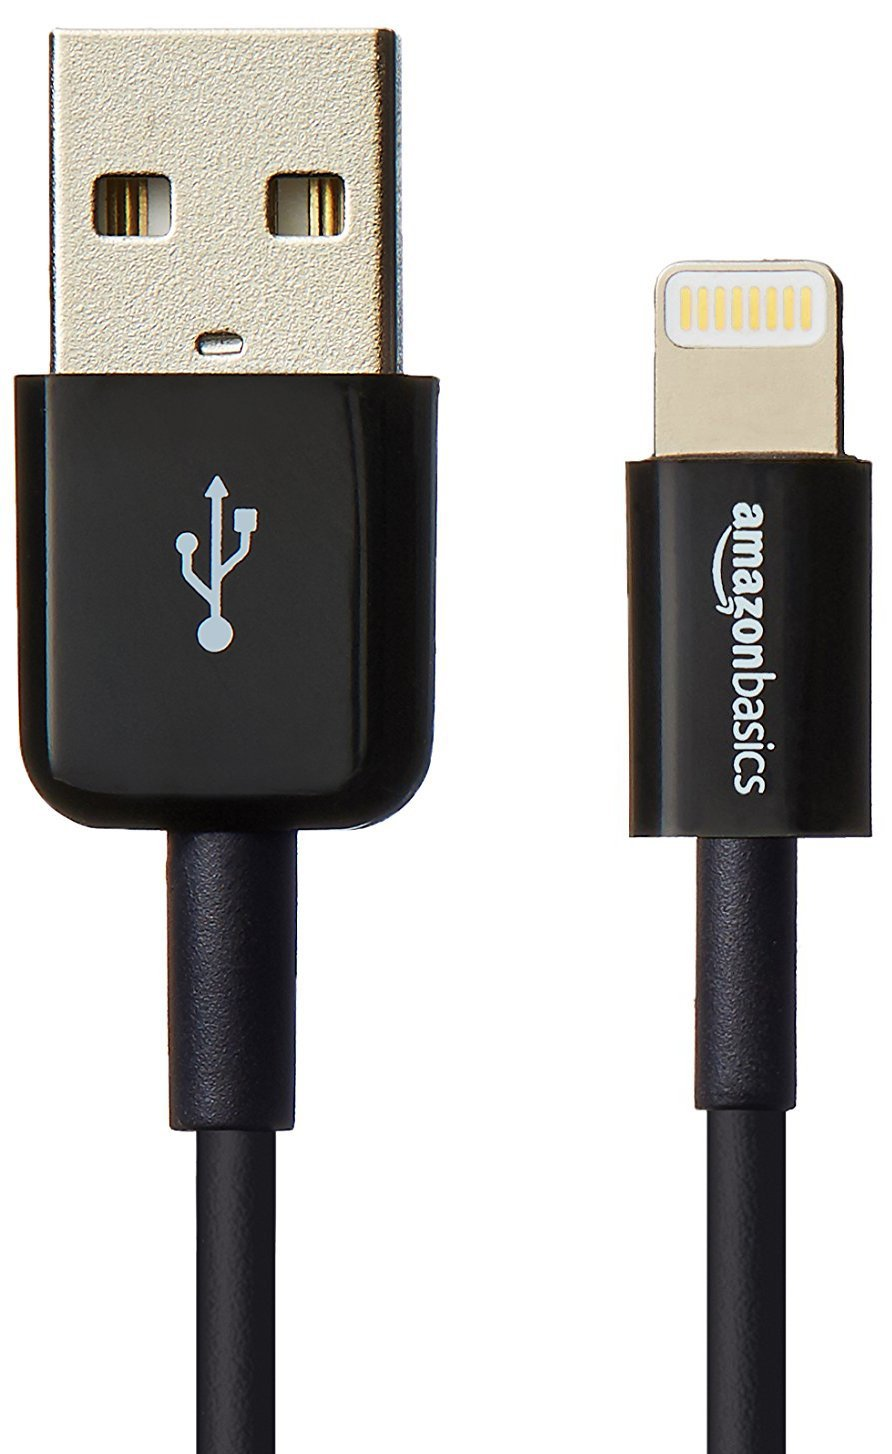 AmazonBasics Apple Certified Lightning to USB Cable 2-Pack - 3 Feet (0.9 Meters) - Black